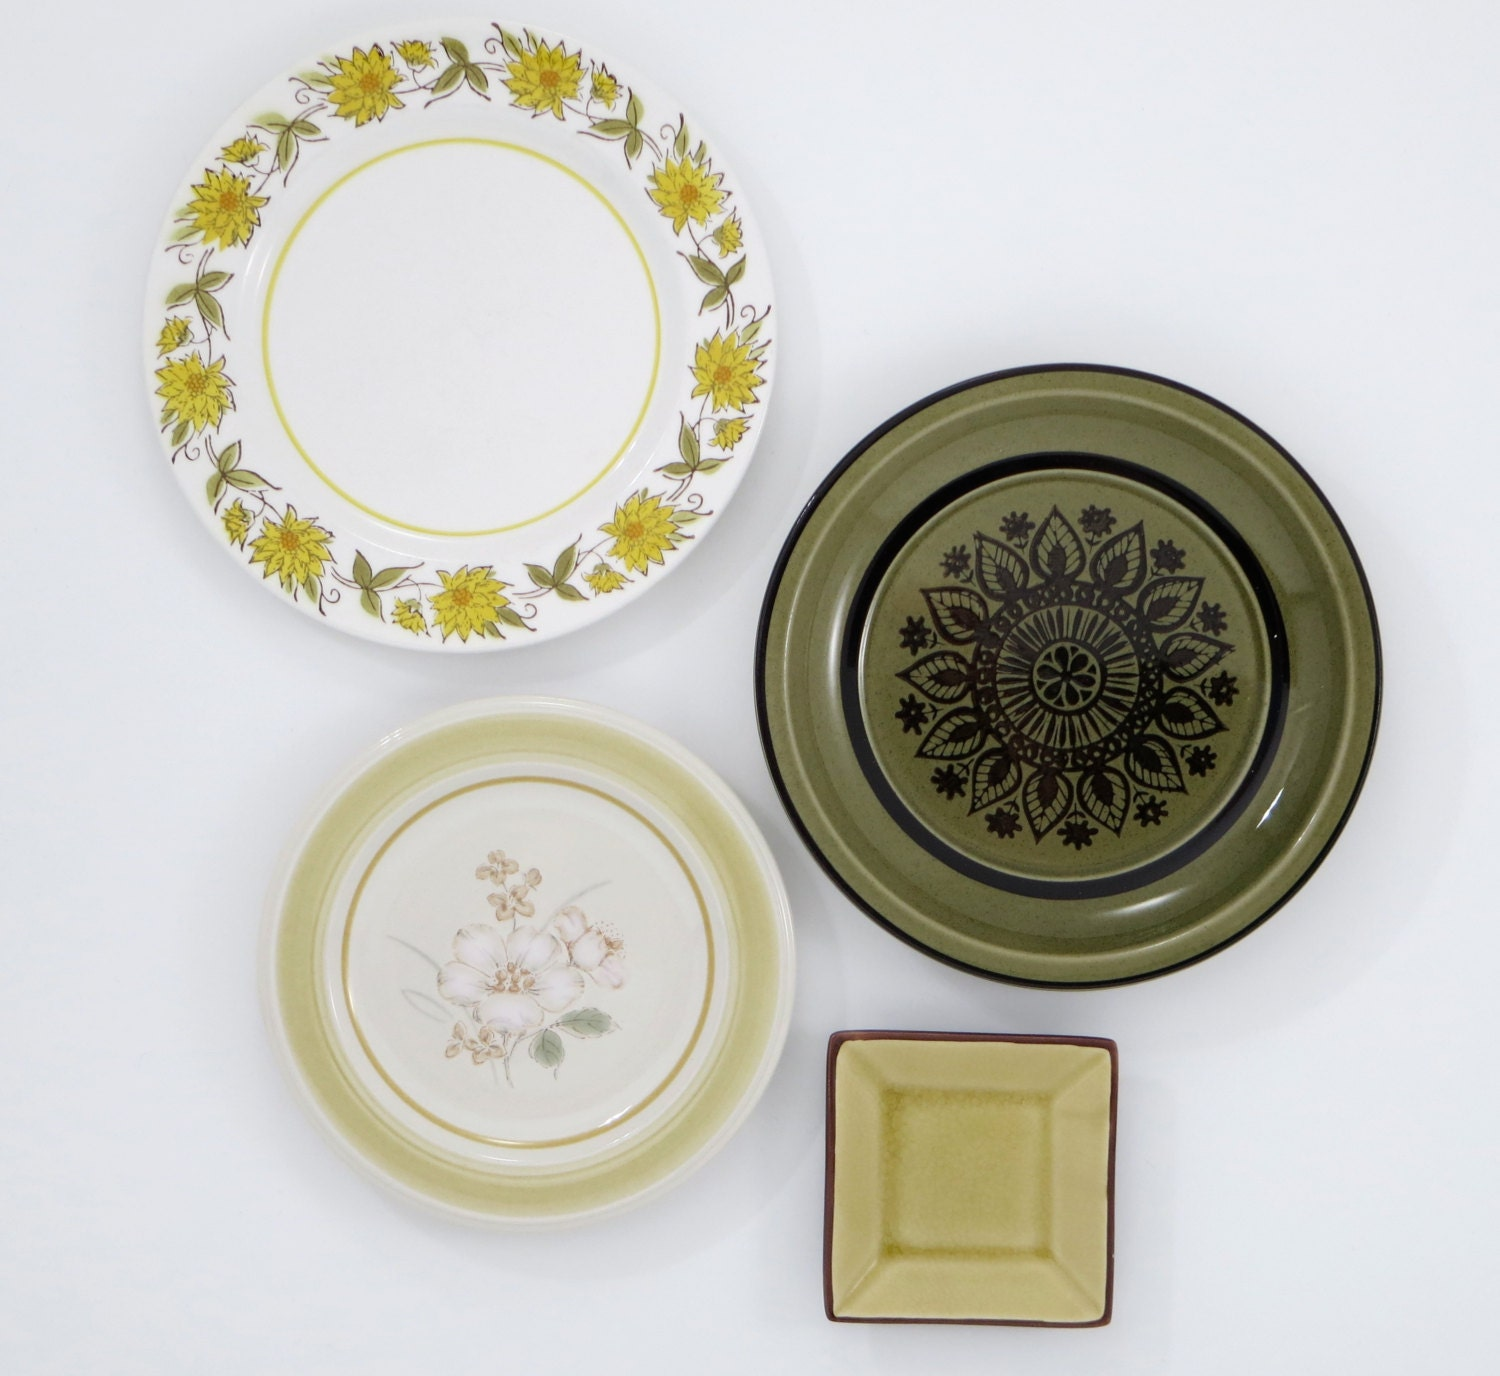 Decorative plates kitchen wall decor shabby by for Decorative wall dishes